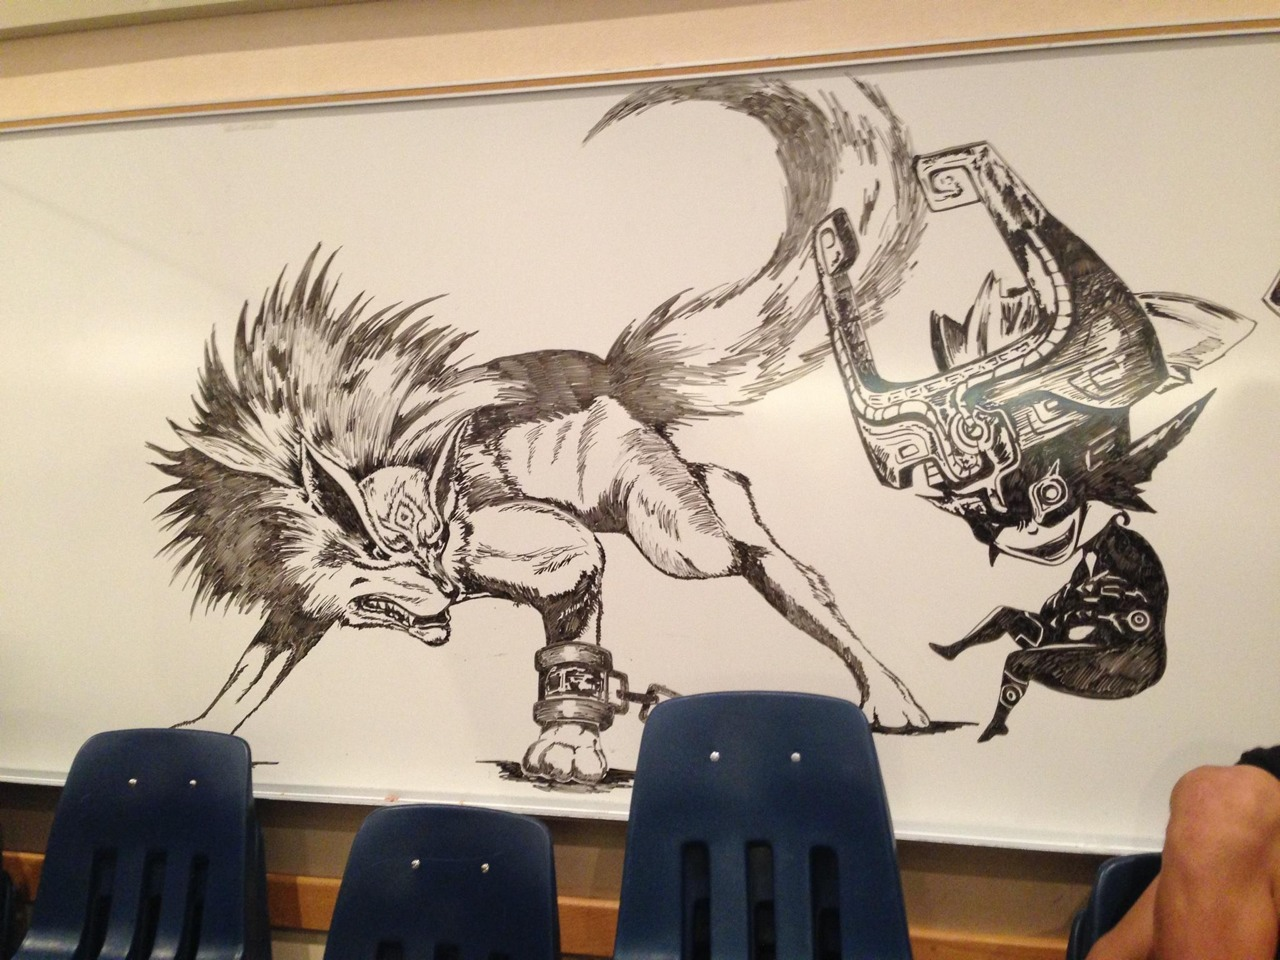 Drawn maze janitor – Midna drawing in cafeteria